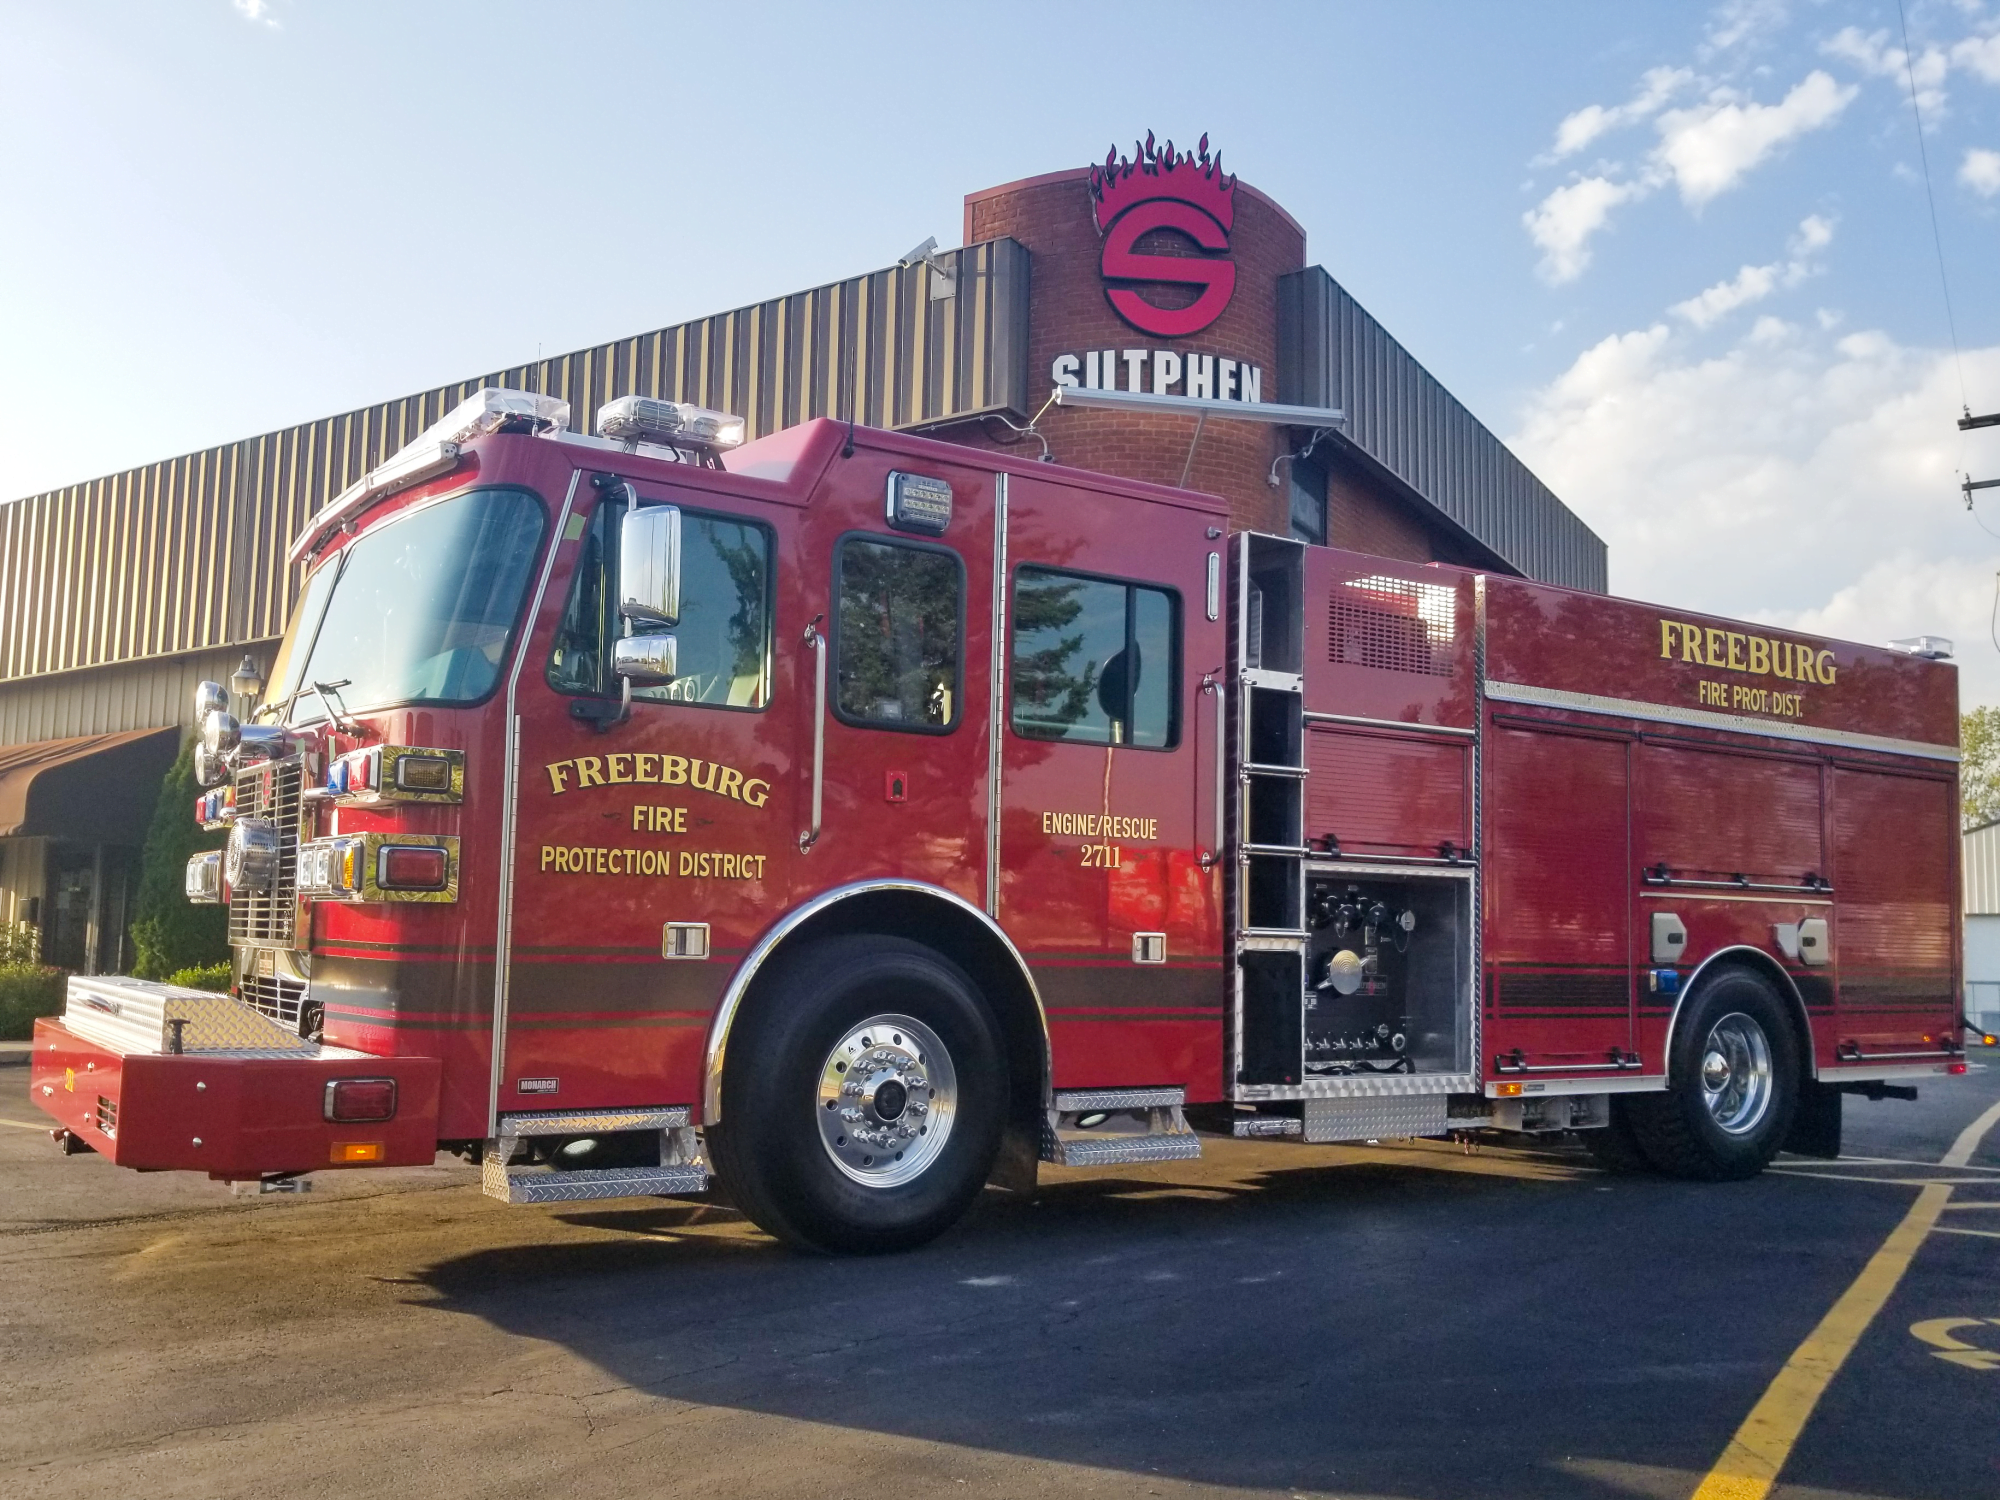 Freeburg Fire Protection District